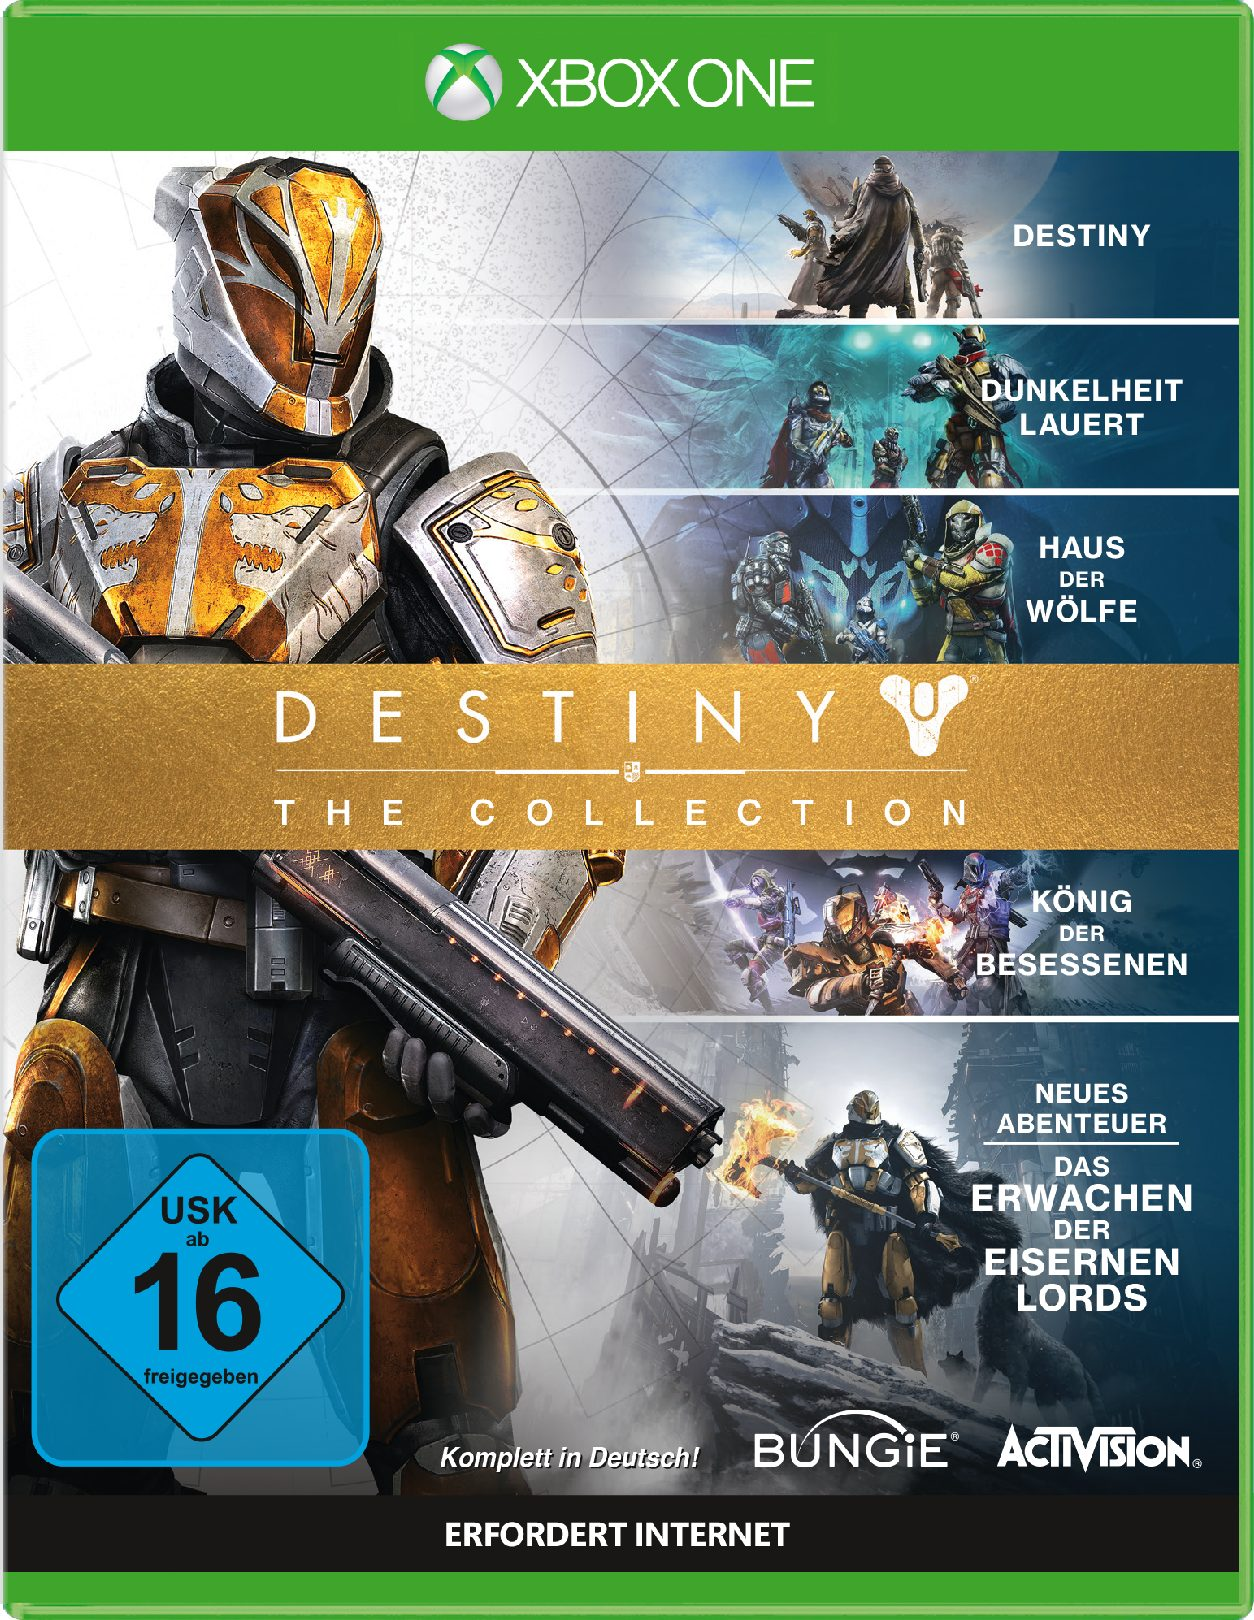 ACTIVISION BLIZZARD Destiny - The Collection »XBox One«